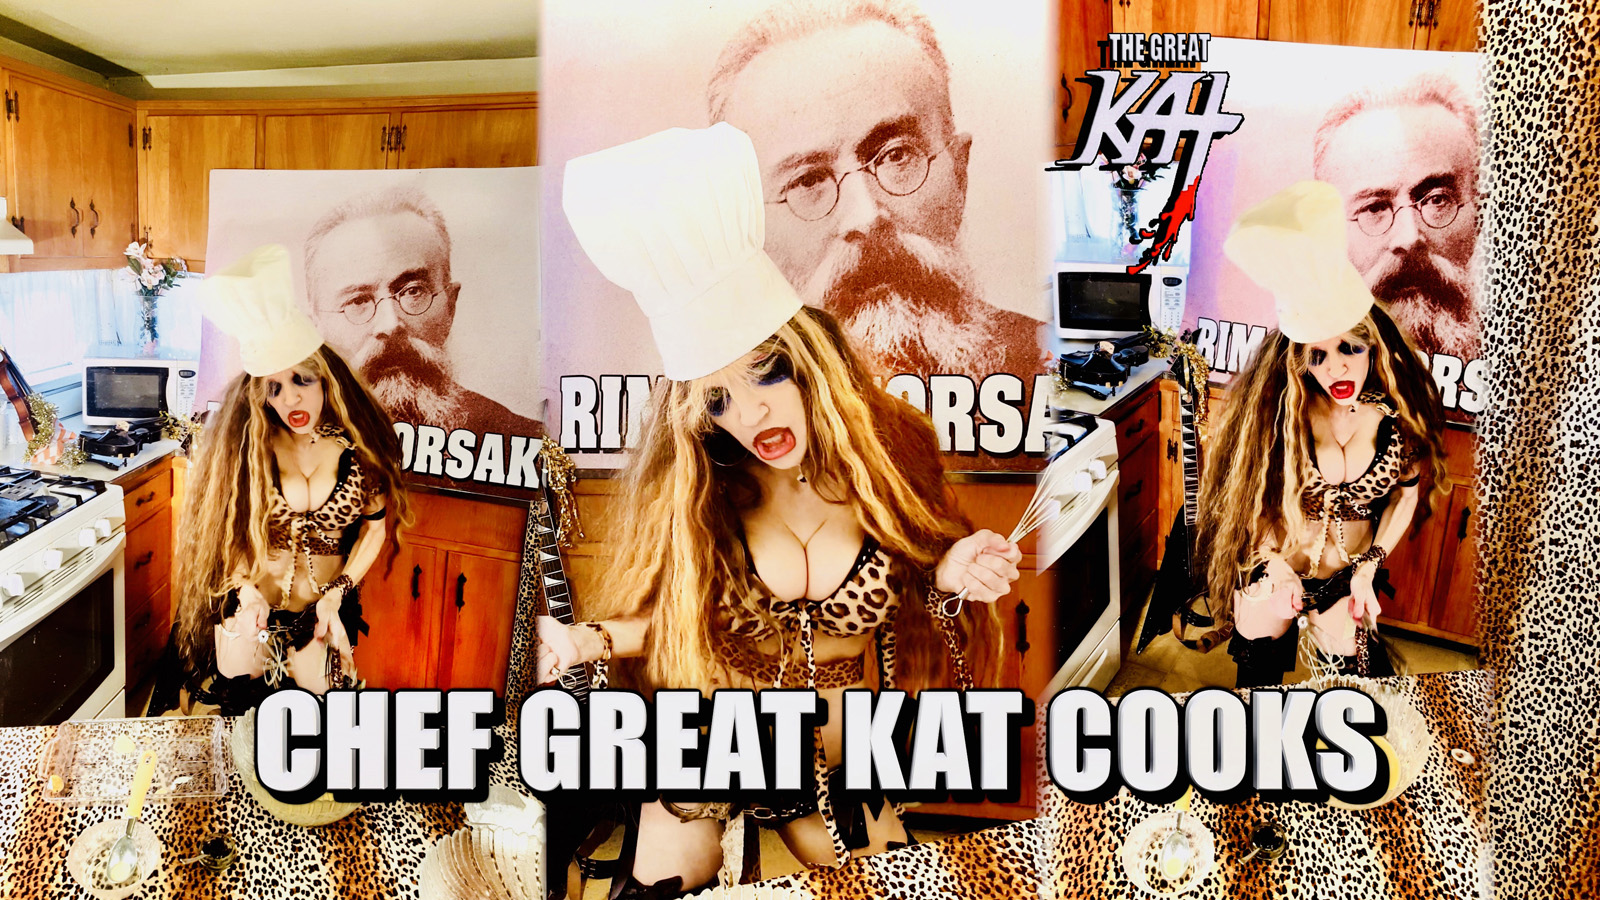 """CHEF GREAT KAT COOKS! From """"CHEF GREAT KAT COOKS RUSSIAN CAVIAR AND BLINI WITH RIMSKY-KORSAKOV"""" VIDEO!!"""